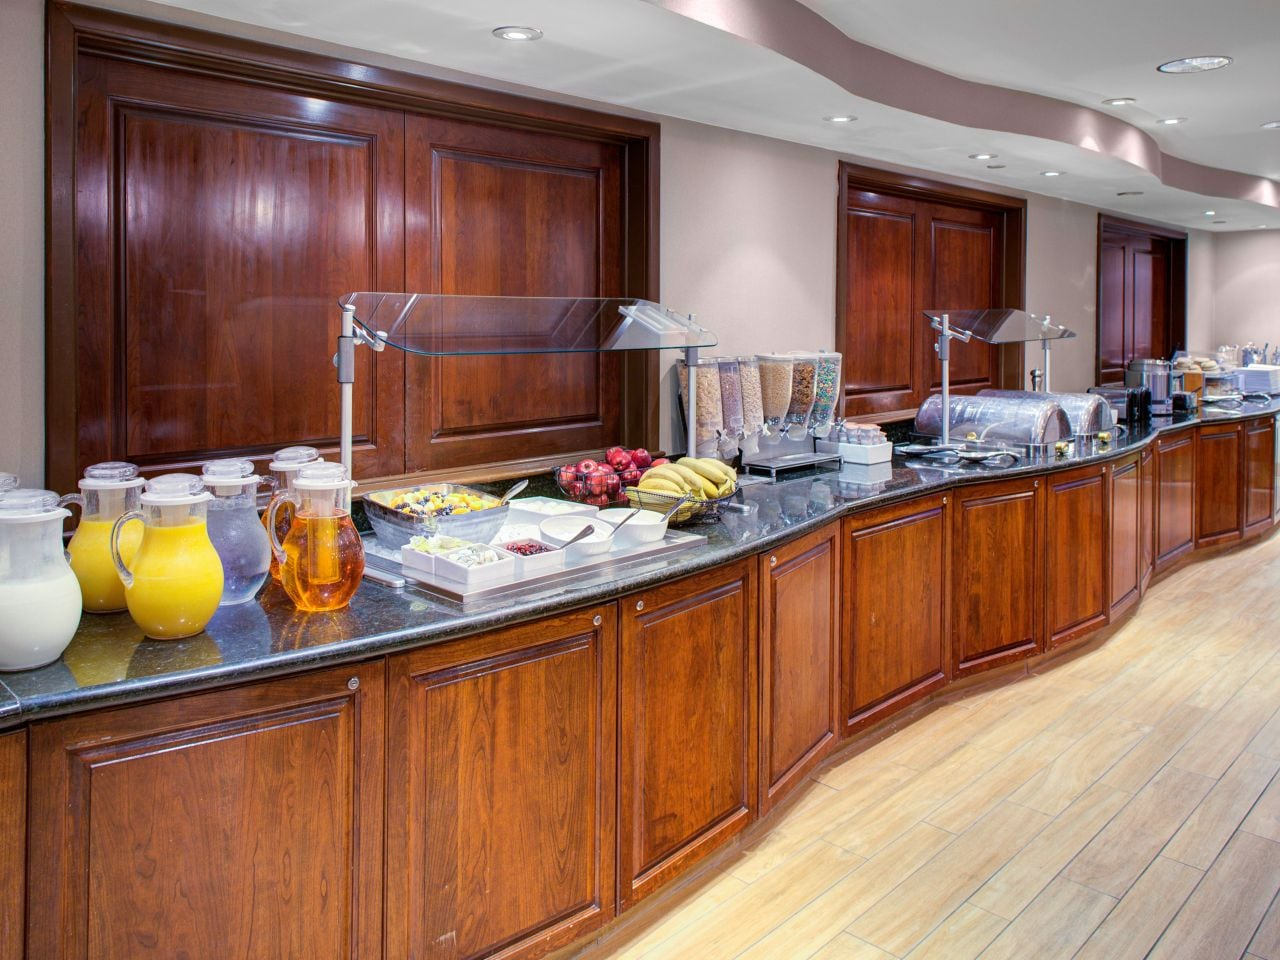 Hyatt House Breakfast Bar In Parsippany, New Jersey